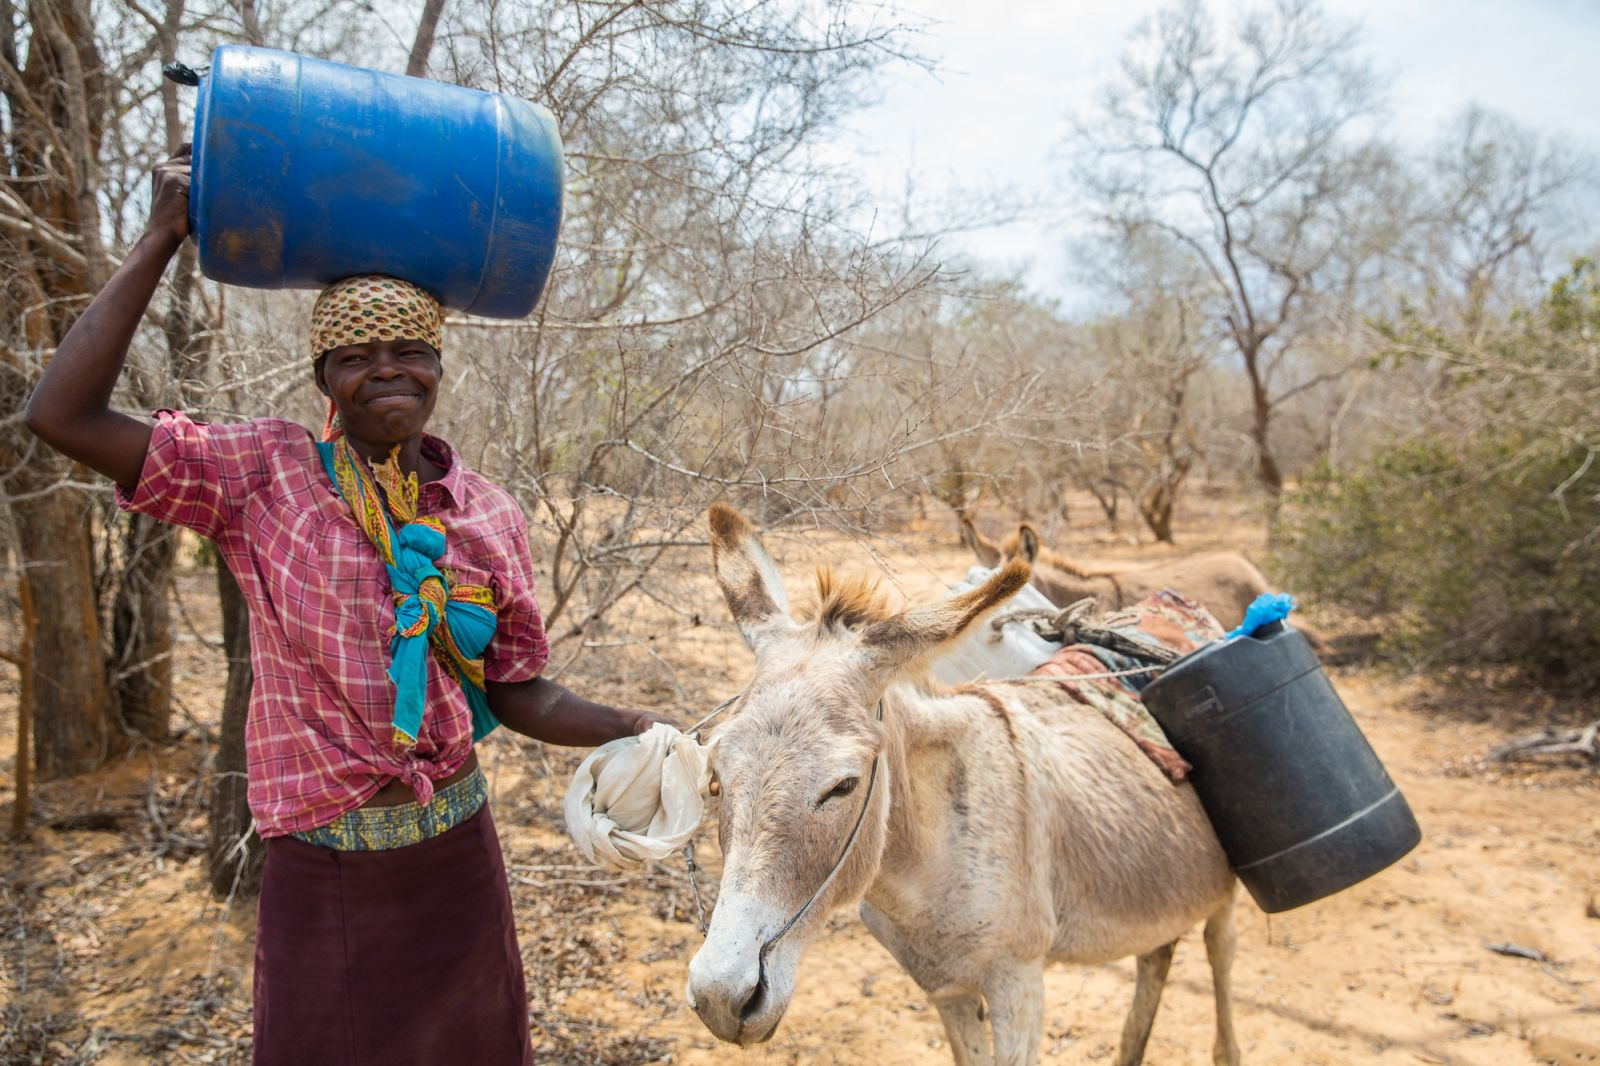 Prior to the drought, women spent up to 2 hours per day collecting water for household consumption. The extended nature of the drought has meant women have had to spend in excess of 6 hours searching for and transporting water to their homes.